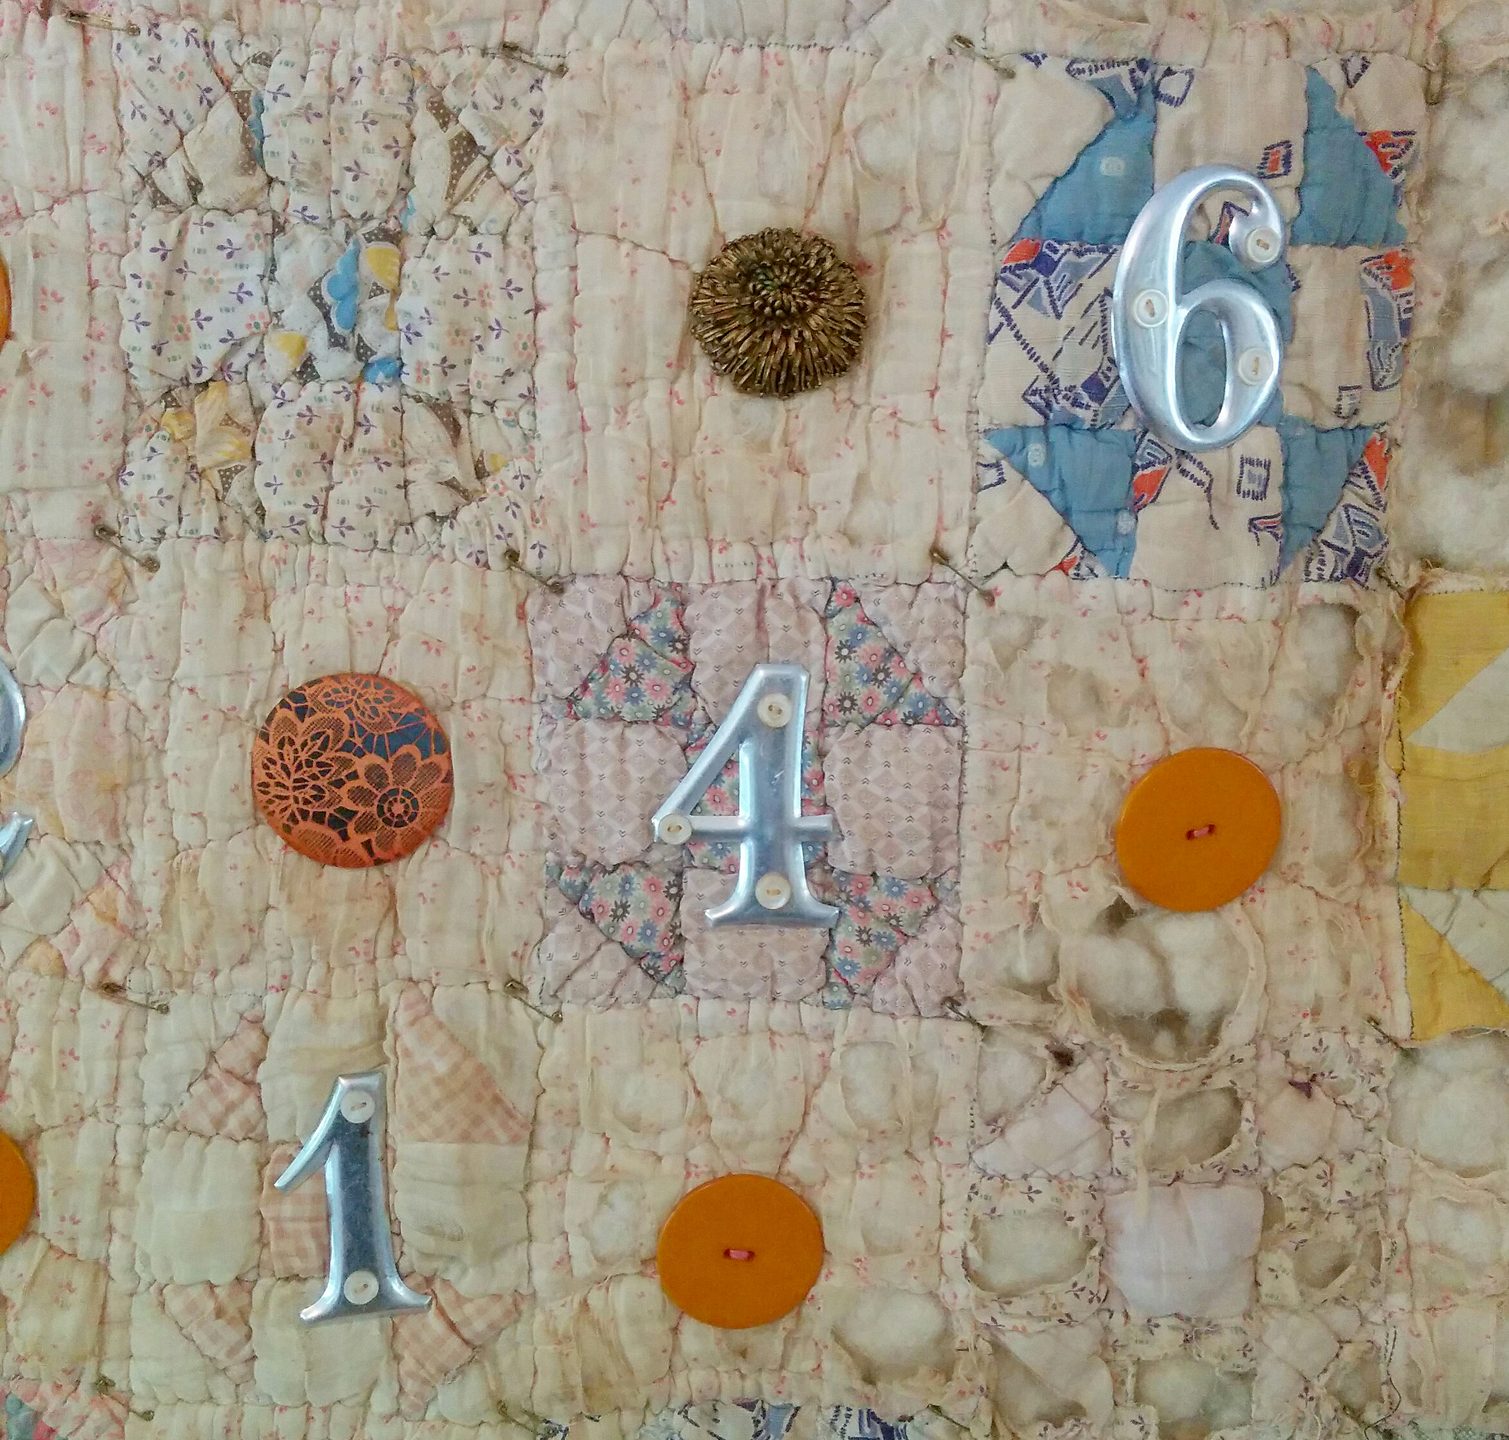 Quilt by Number, circa 1990